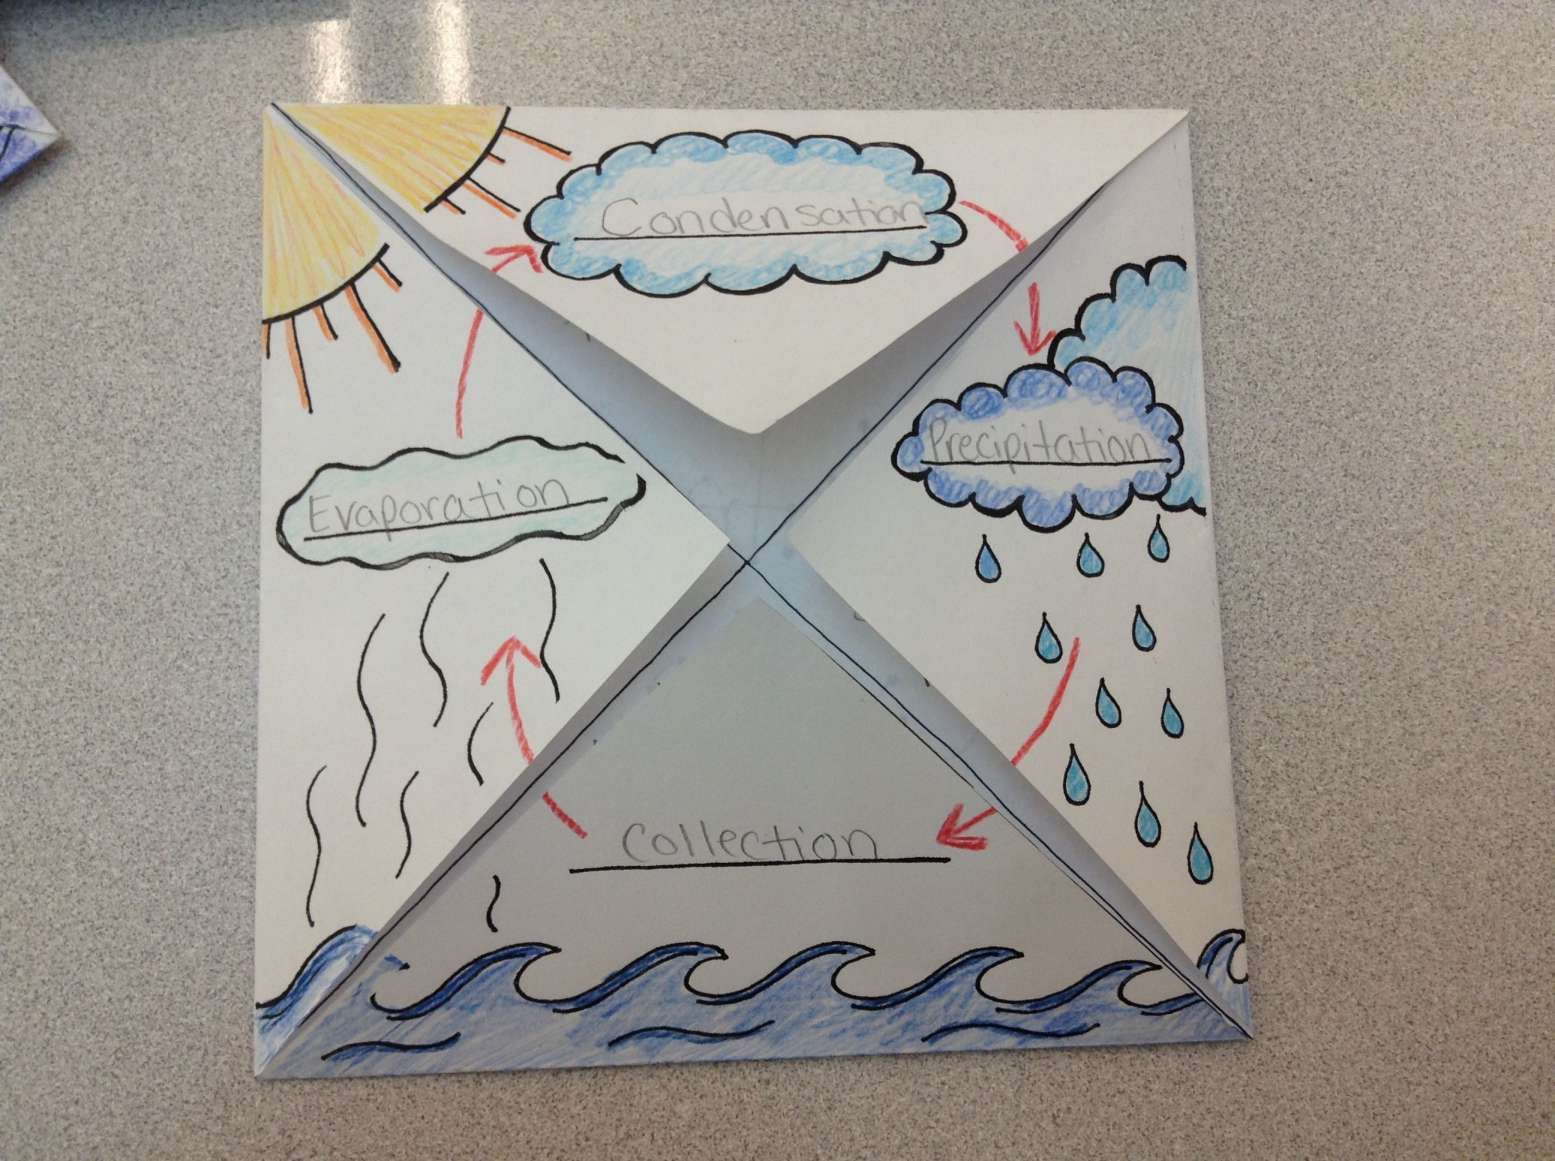 10 Science Court Water Cycle Worksheet Answers